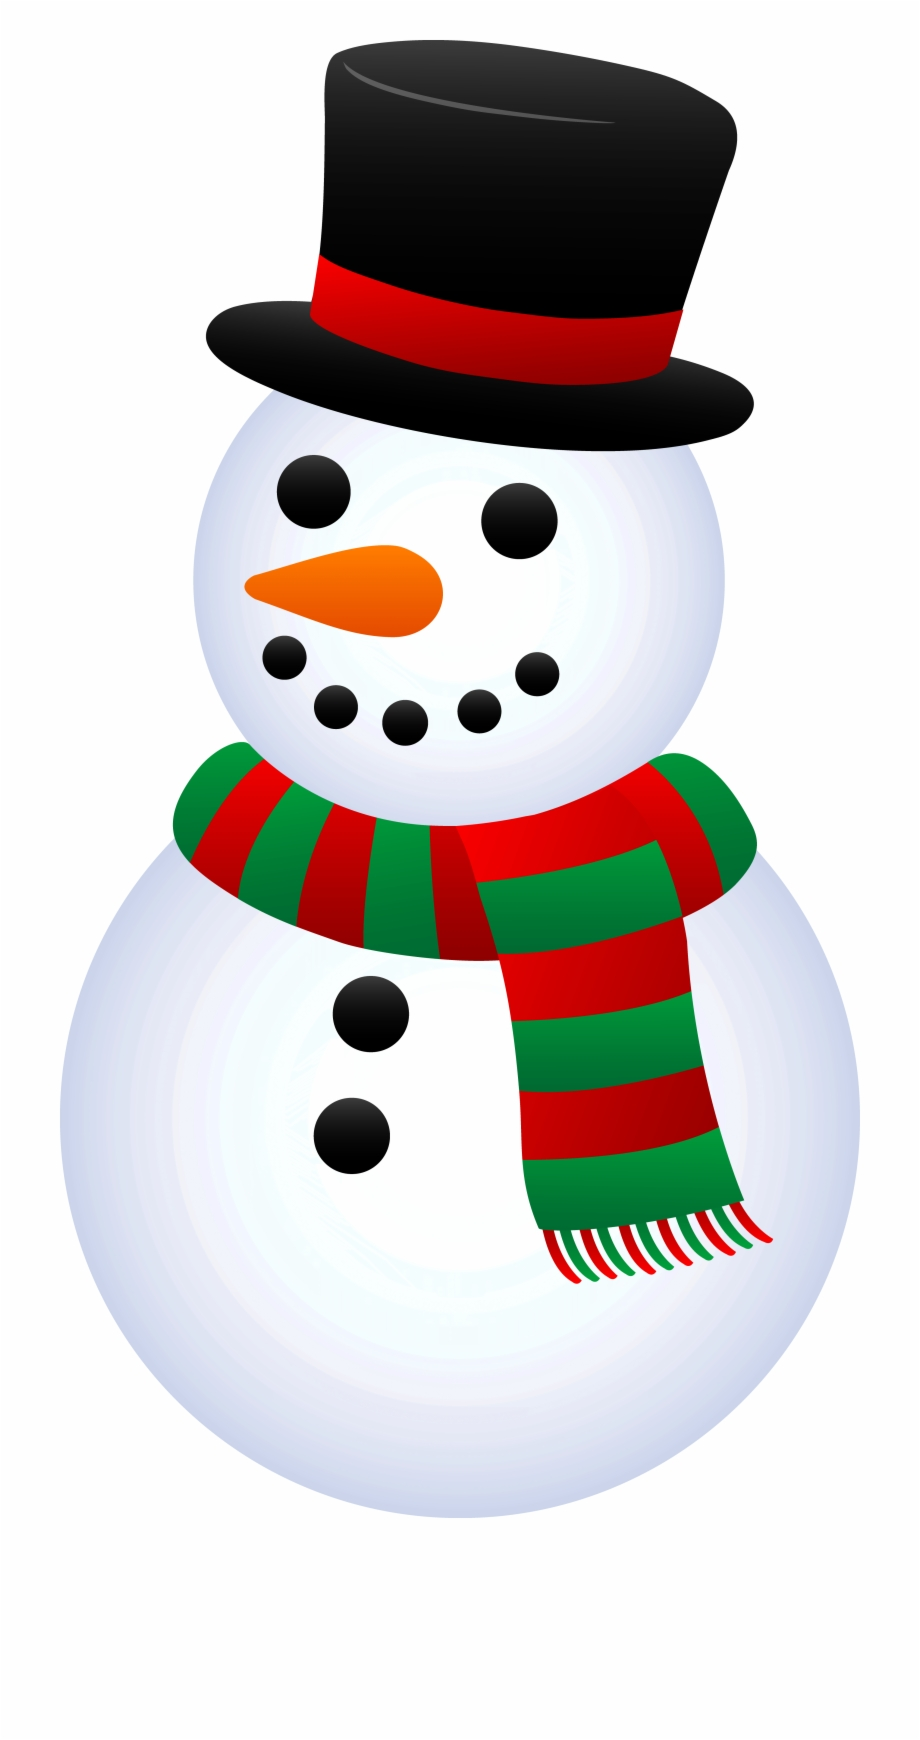 Snowman clipart png graphic library stock Banner Free Drama Cliparts Zone Clipart - Snowman Clipart ... graphic library stock